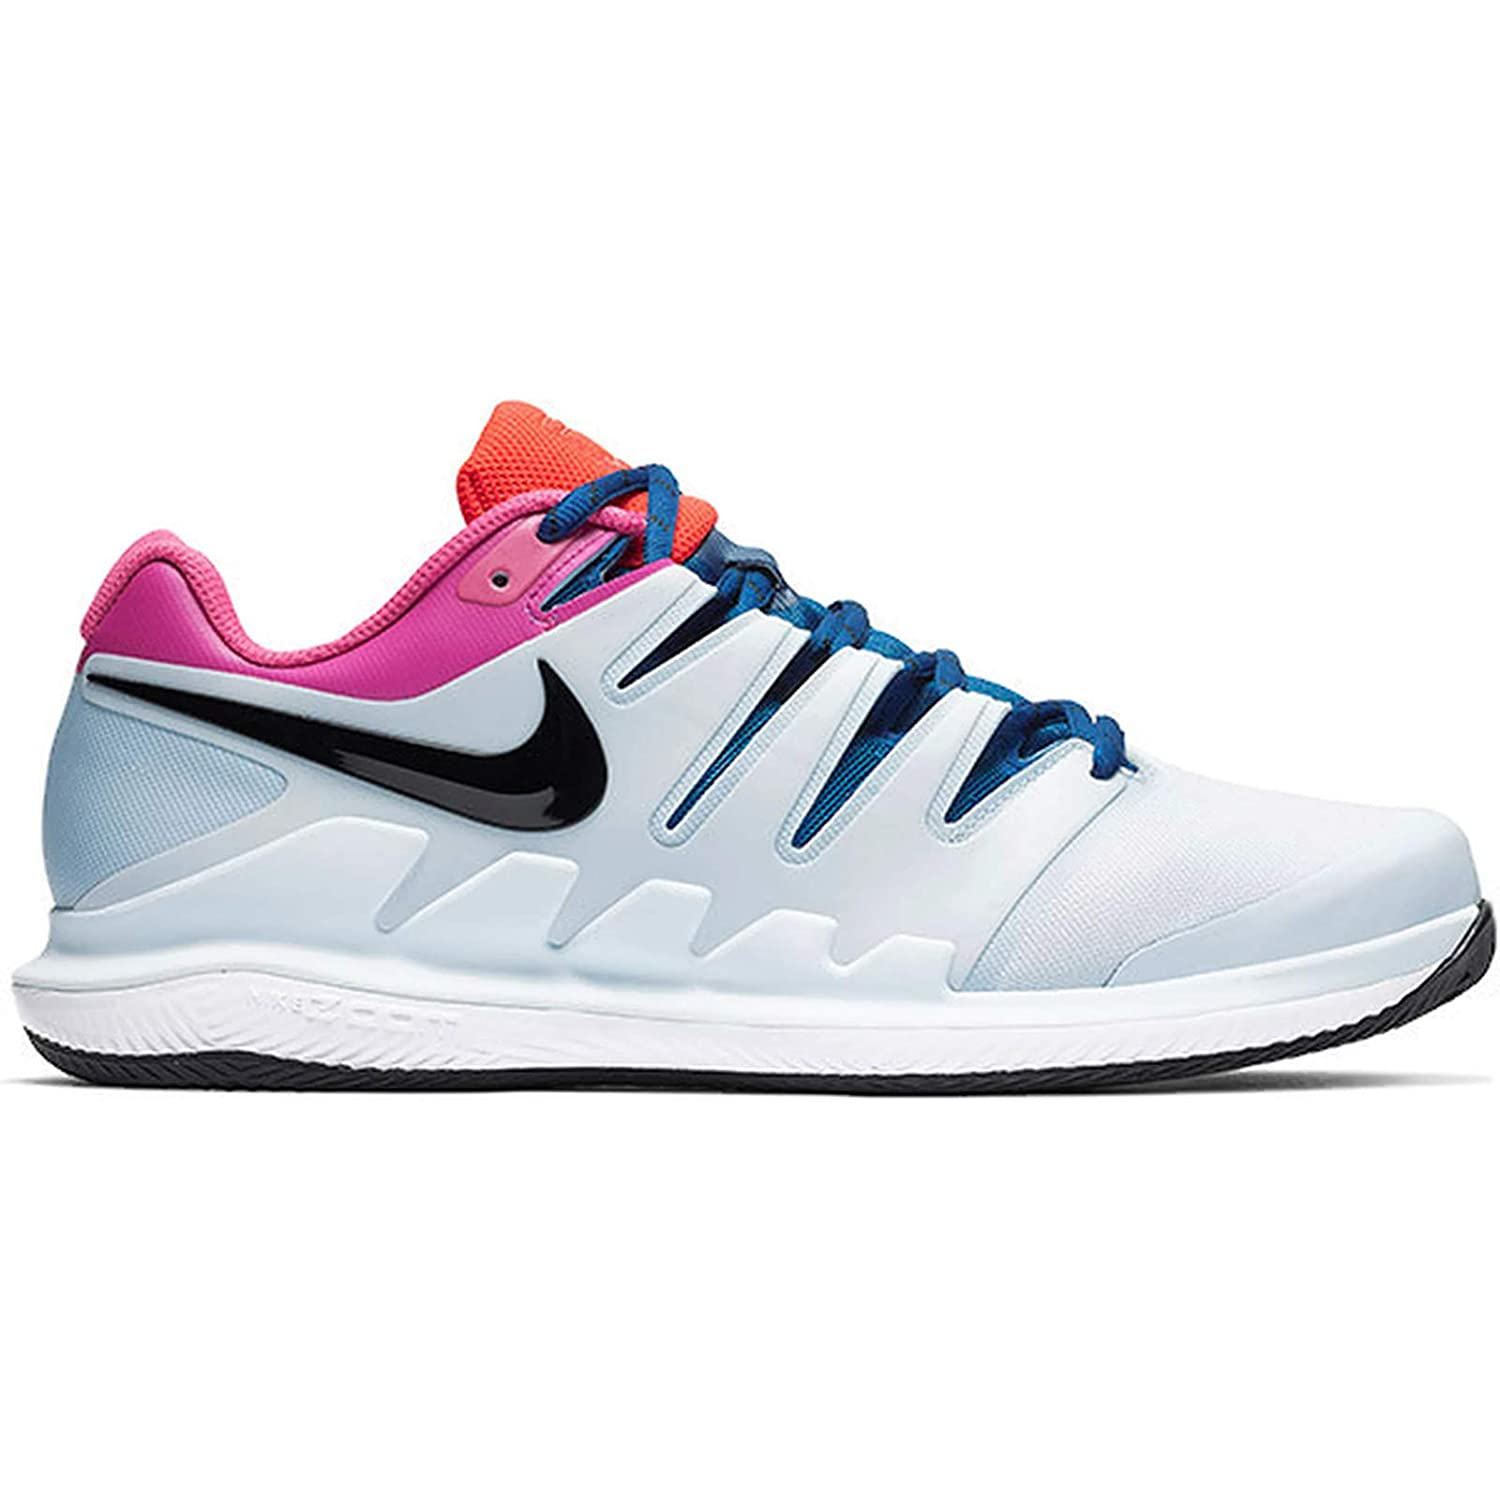 552874f7337de Nike Men's Zoom Vapor X Clay Tennis Shoe